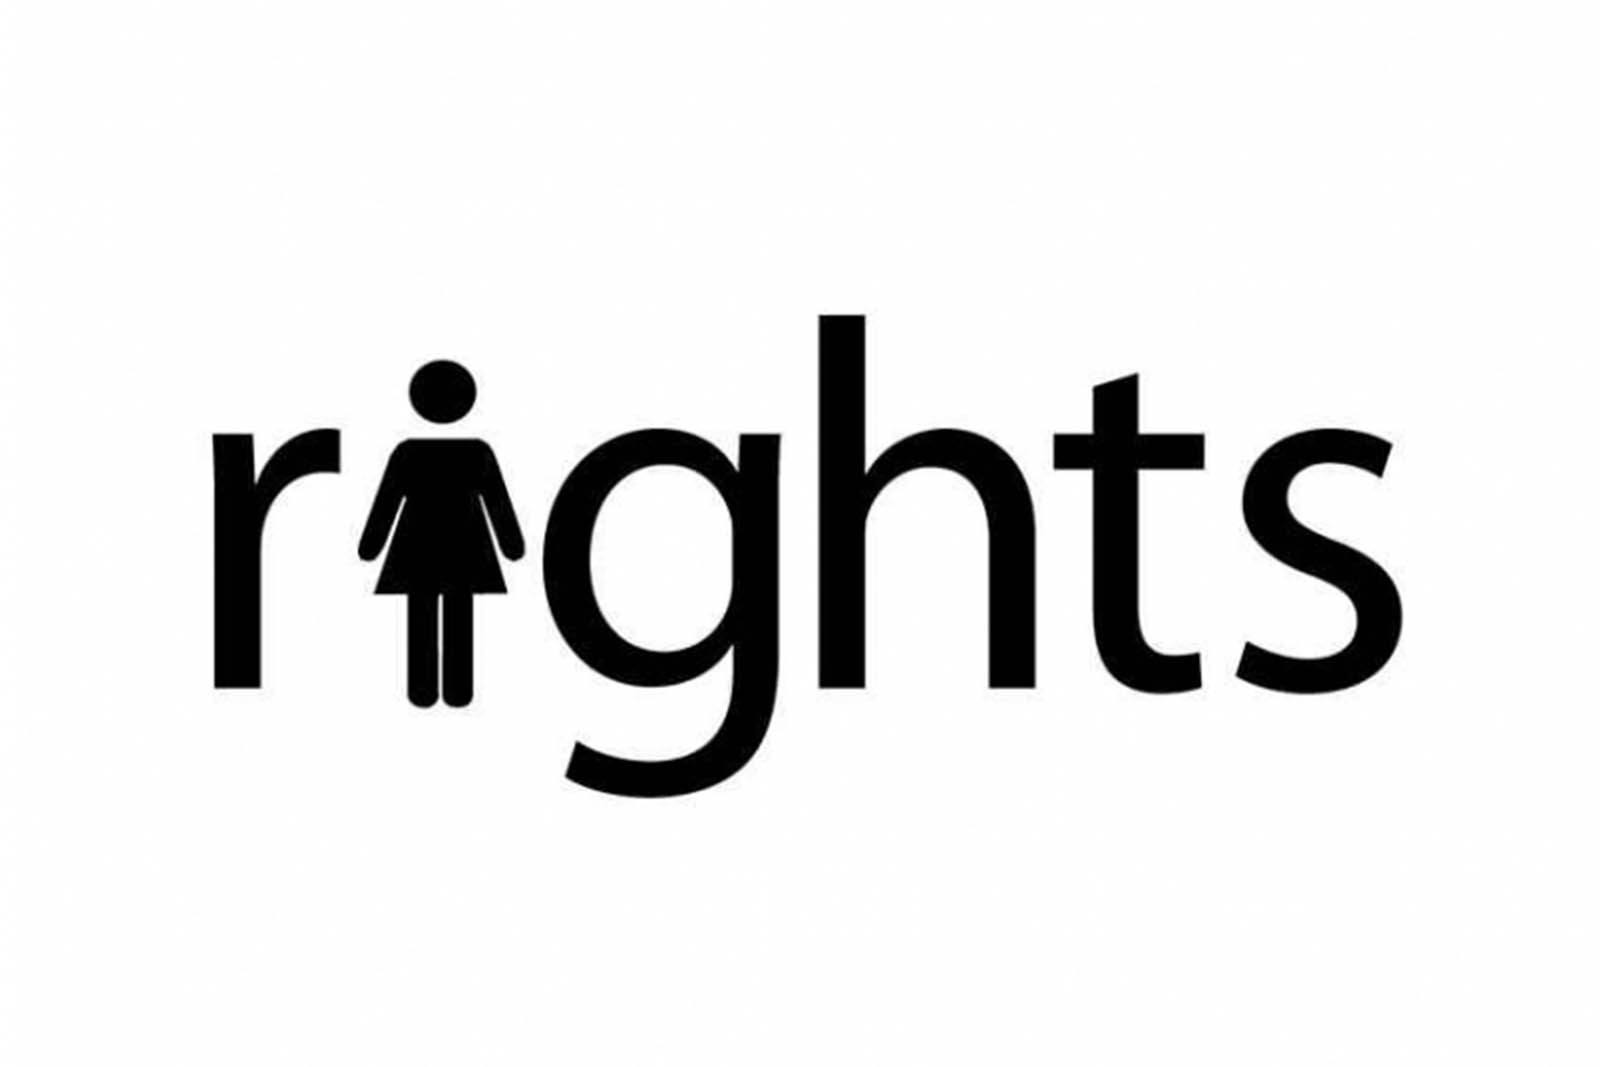 WOMEN'S PROPERTY RIGHTS IN NIGERIA